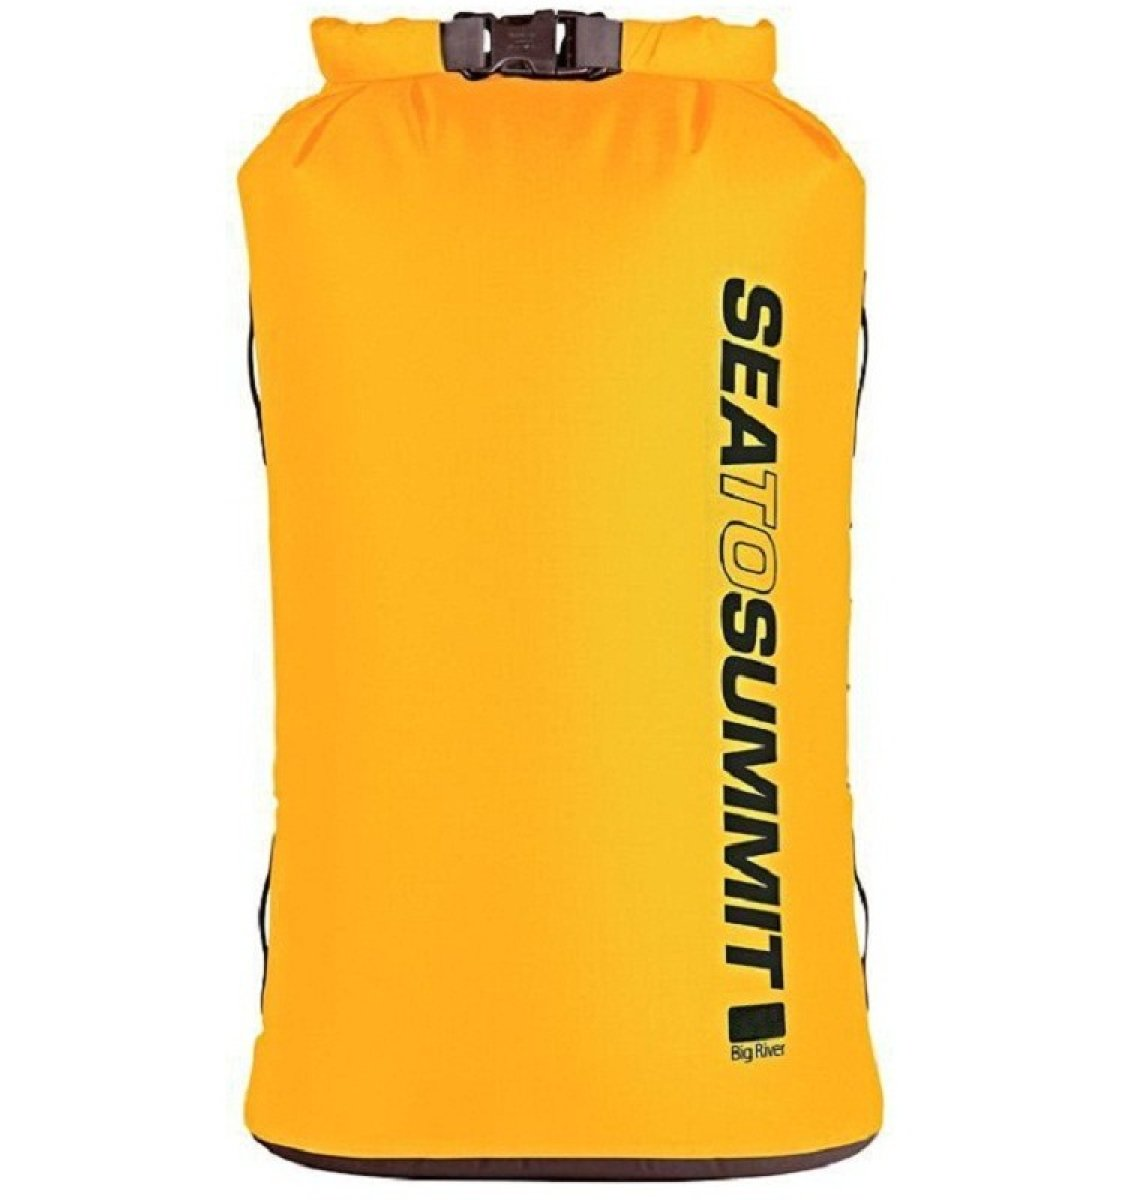 Гермомешок Sea to Summit Stopper Dry Bag Yellow, 35 L STS ASDB35YW